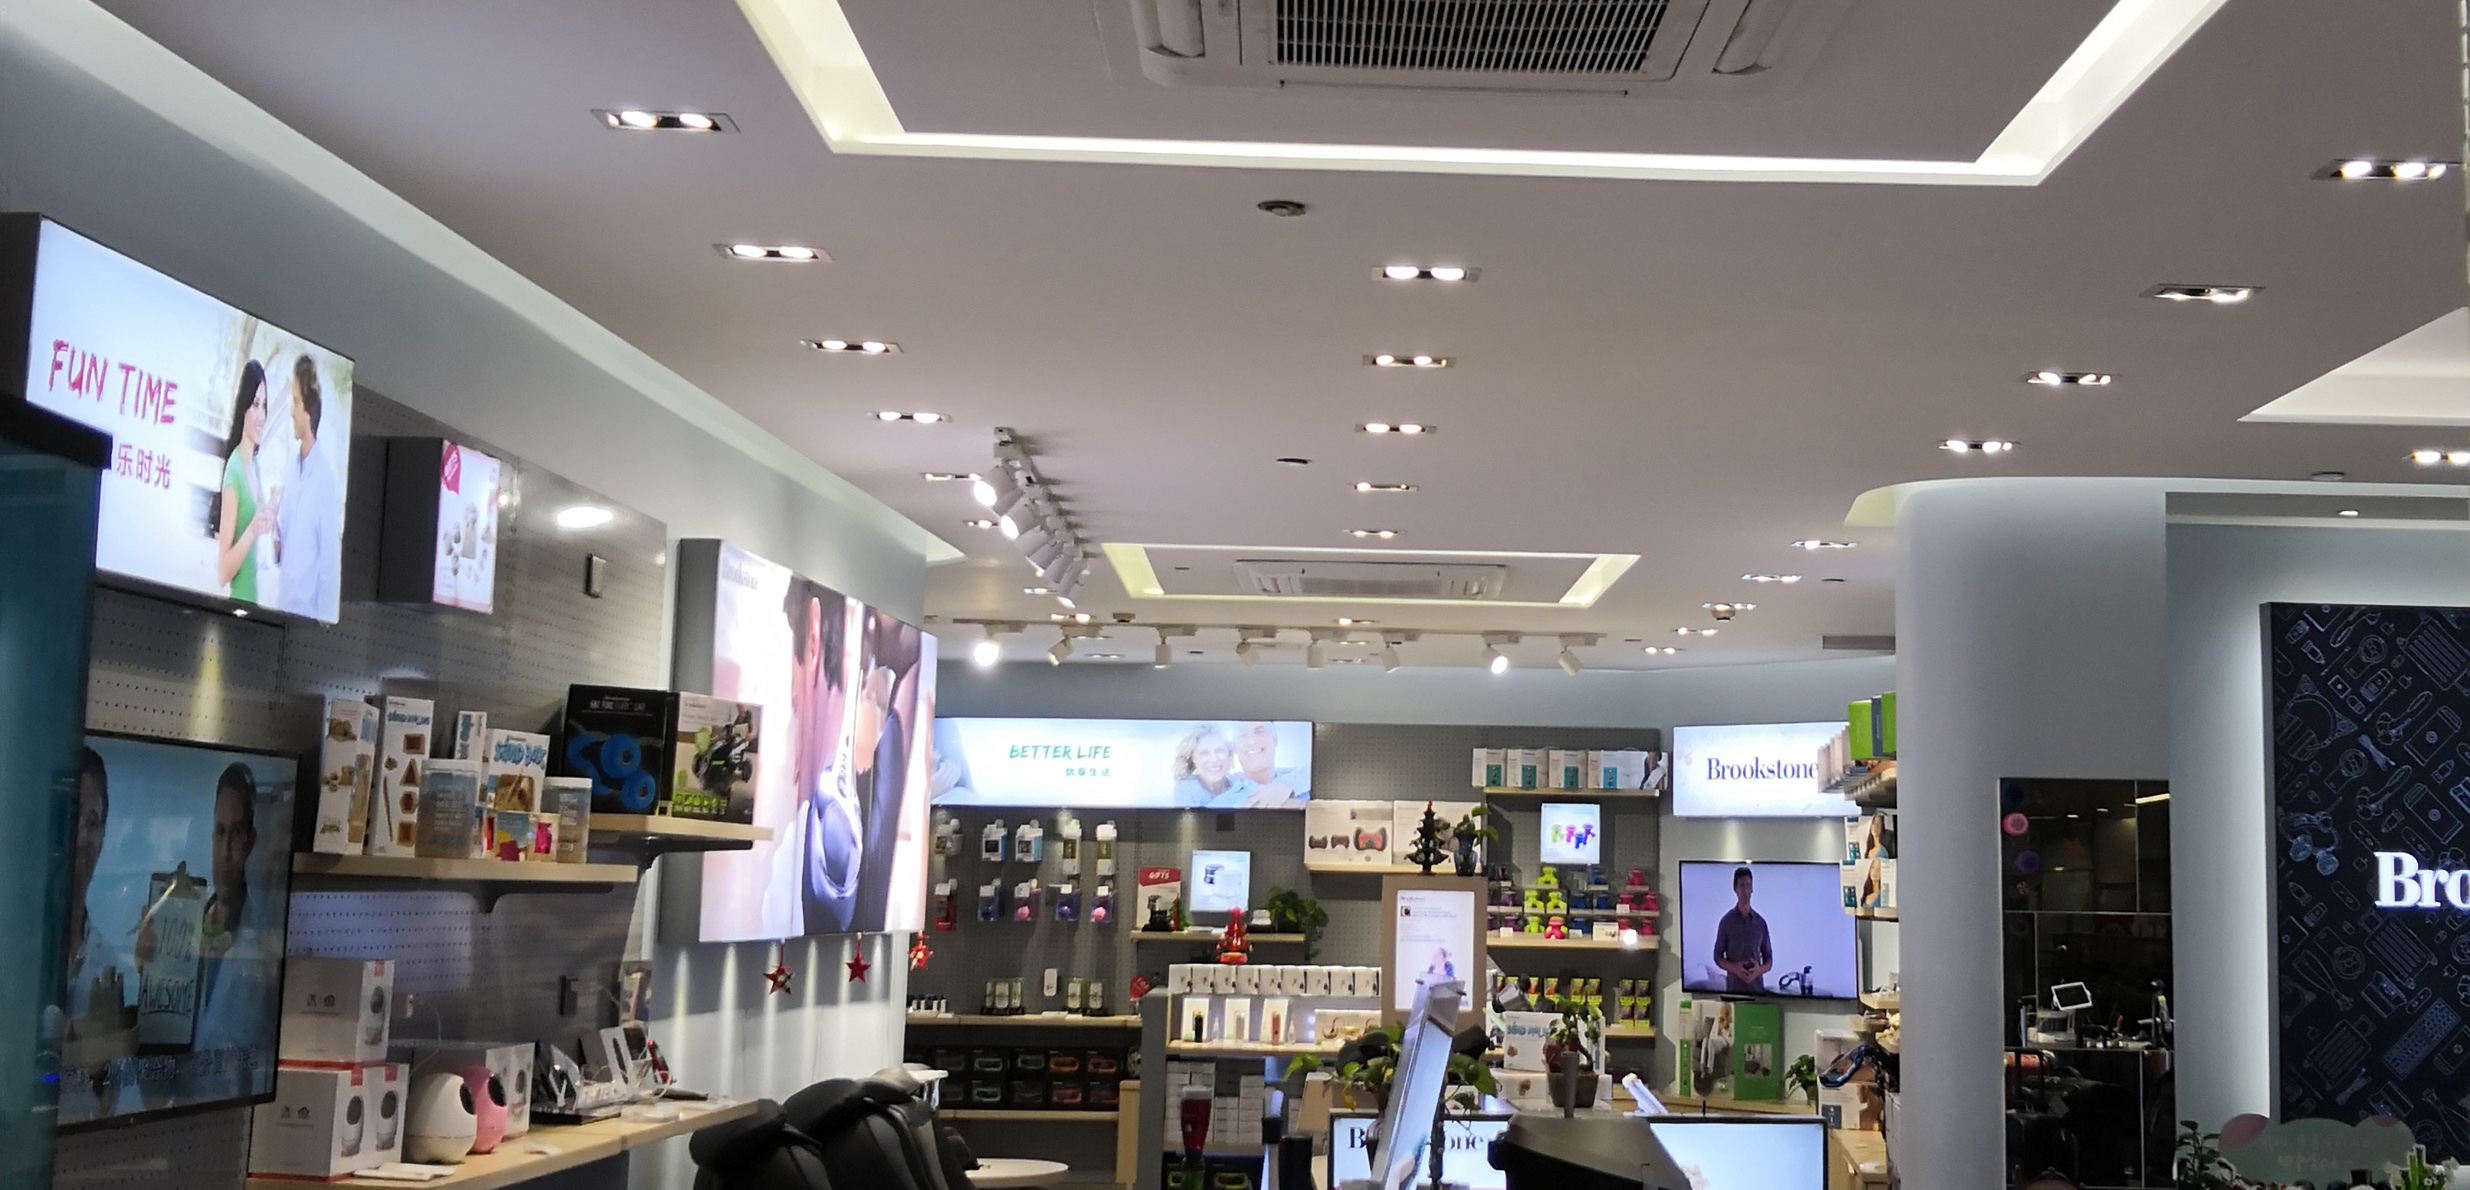 Some Benefits of LED Lights in your Stores